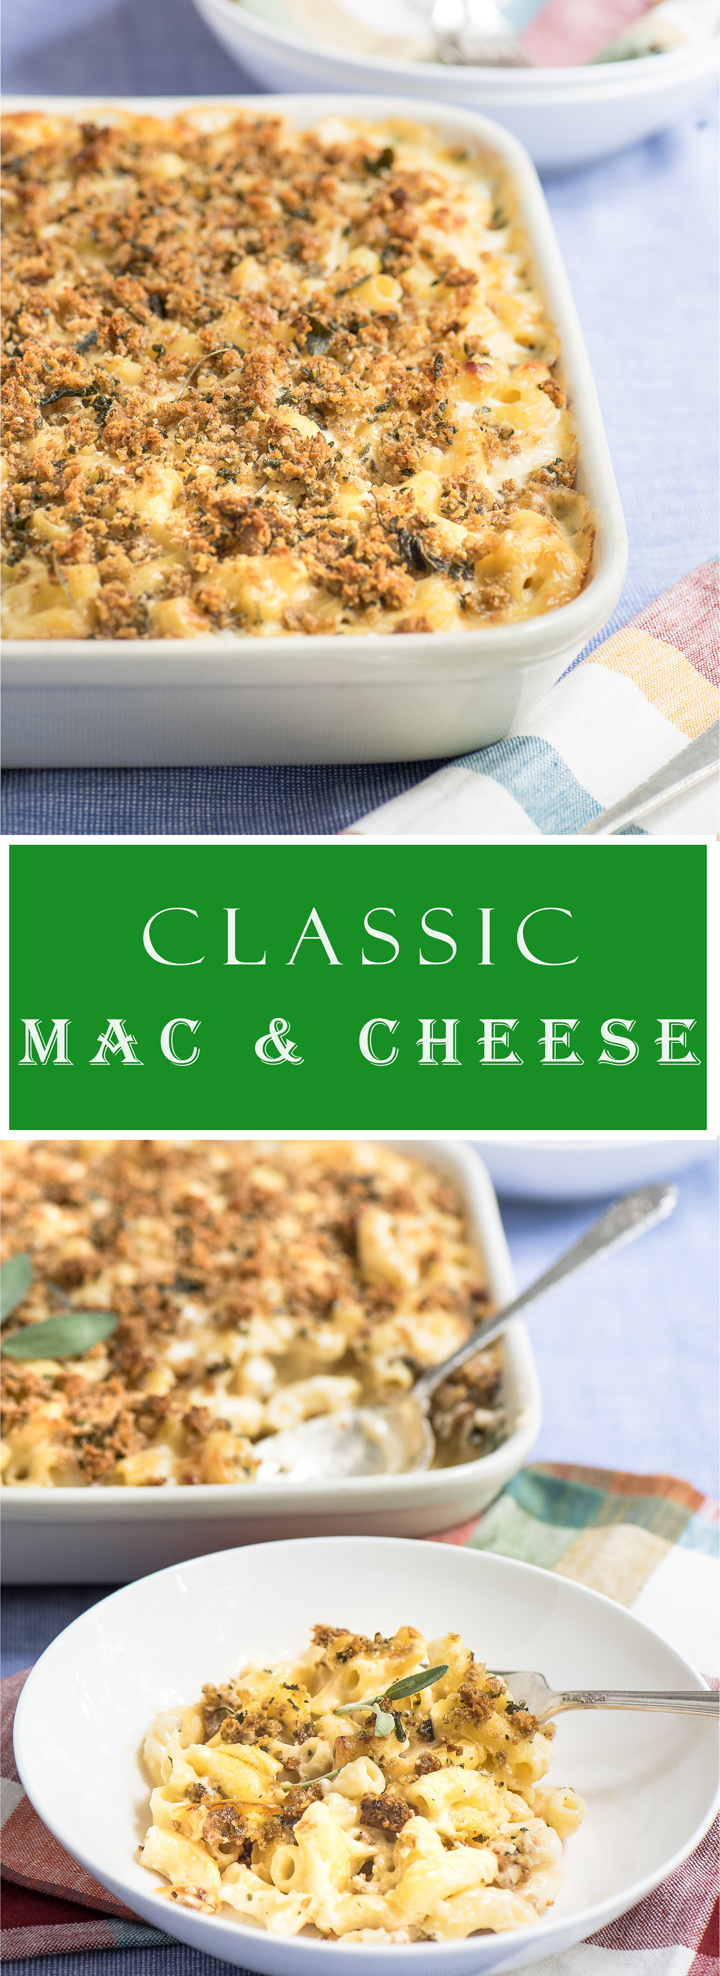 Classic Mac and Cheese recipe. A classic baked mac and cheese recipe with a creamy and cheesy herb infused sauce. Homemade seasoned breadcrumbs top the mac and cheese for a bit of crunch.